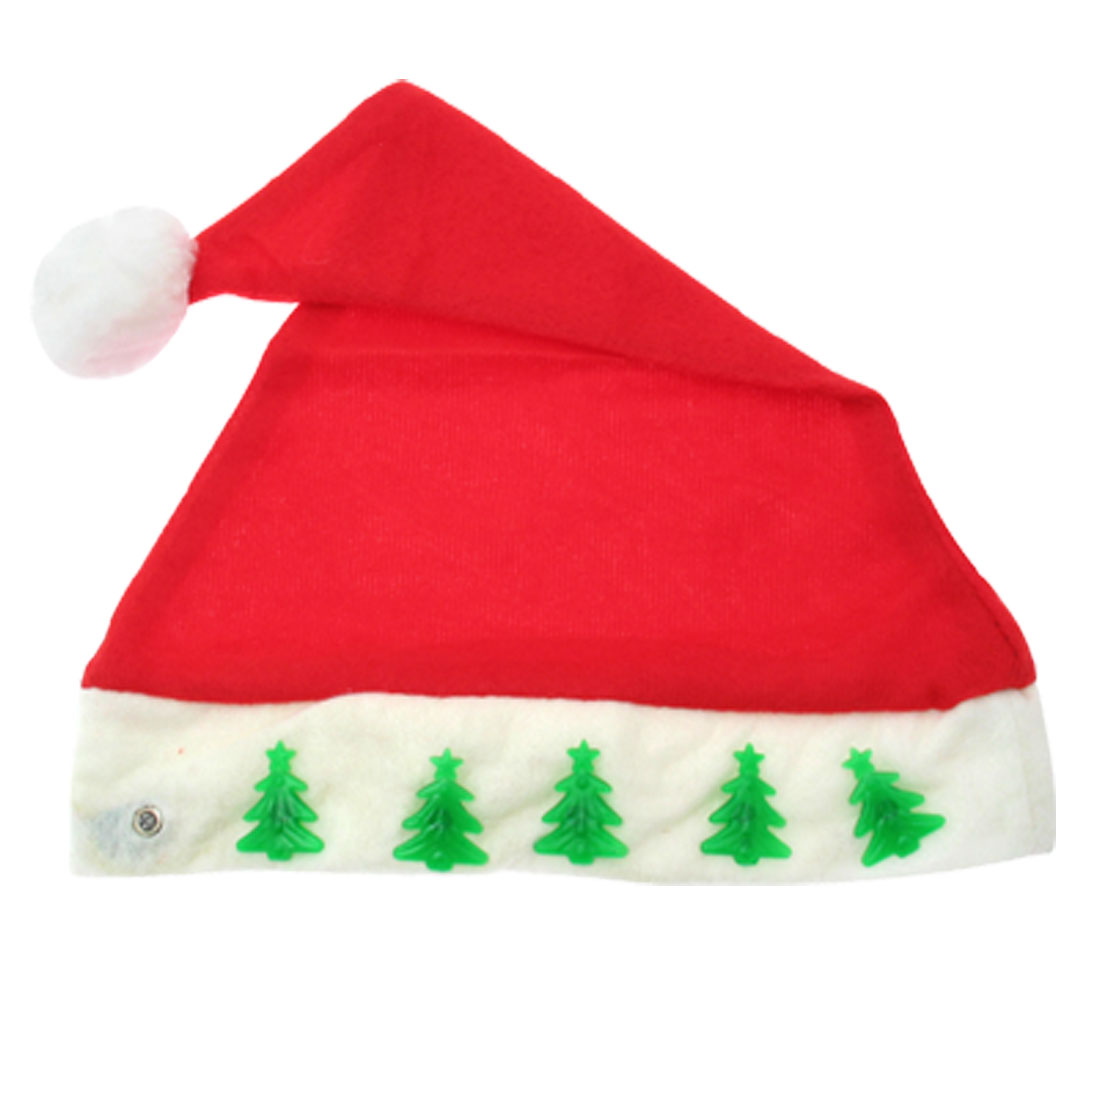 "X'mas Christmas Santa Claus Hat with Christmas Trees Flashlight 15"" - Red"